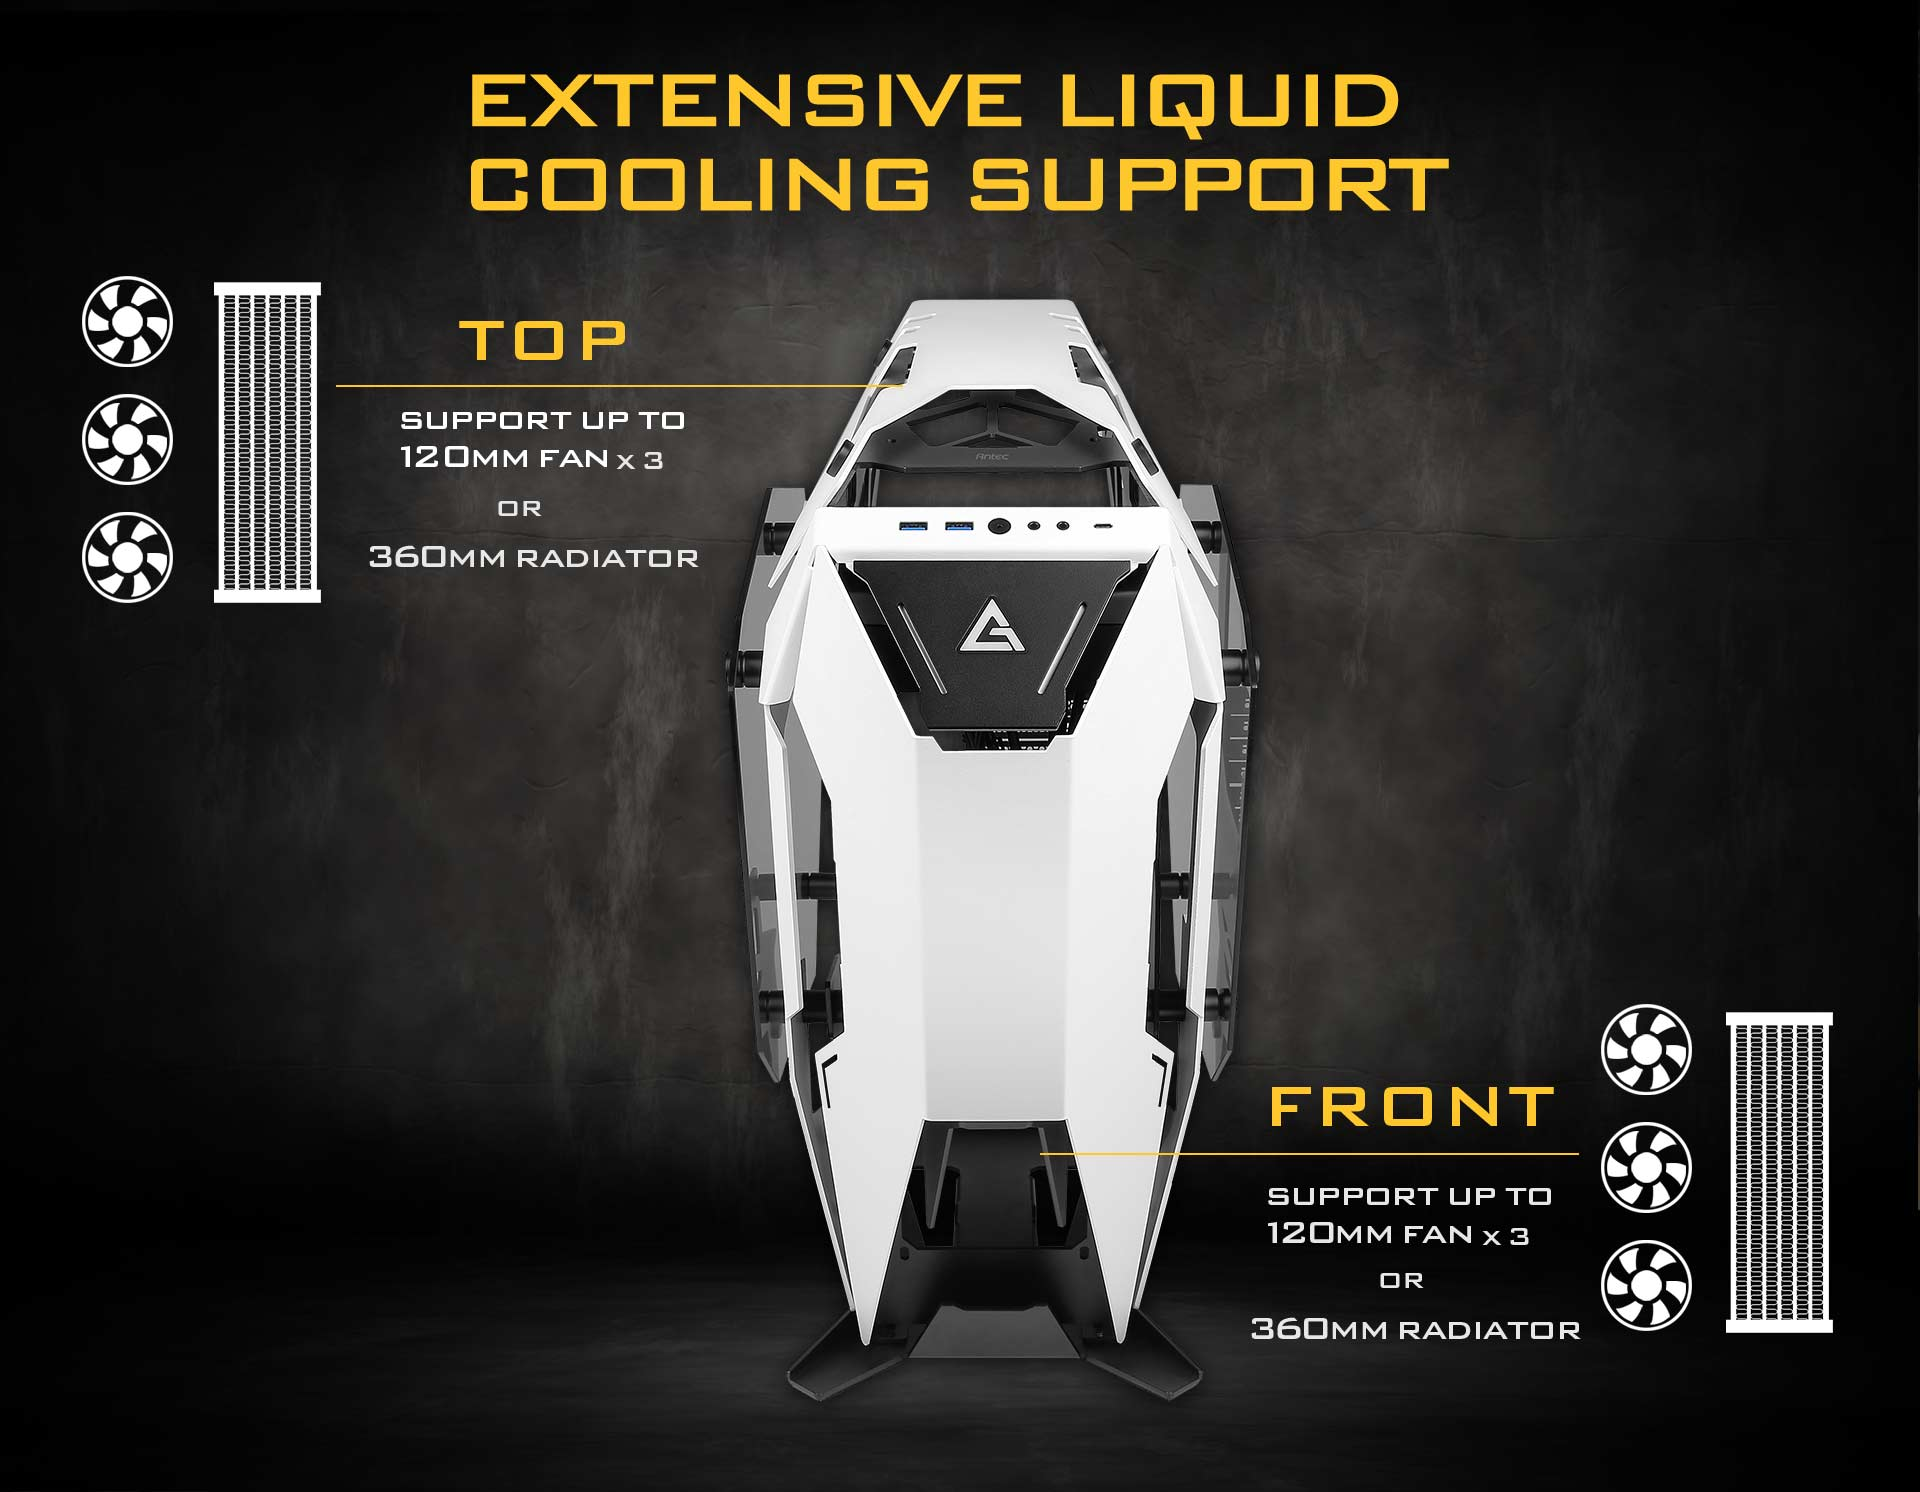 Antec Torque Facing Forward with a header that reads: EXTENSIVE LIQUID COOLING SUPPORT - There are also graphics and text that indicate up to three 120mm fans or a 360mm radiator on and up to three 120mm fans or a 360mm radiator can be installed in front